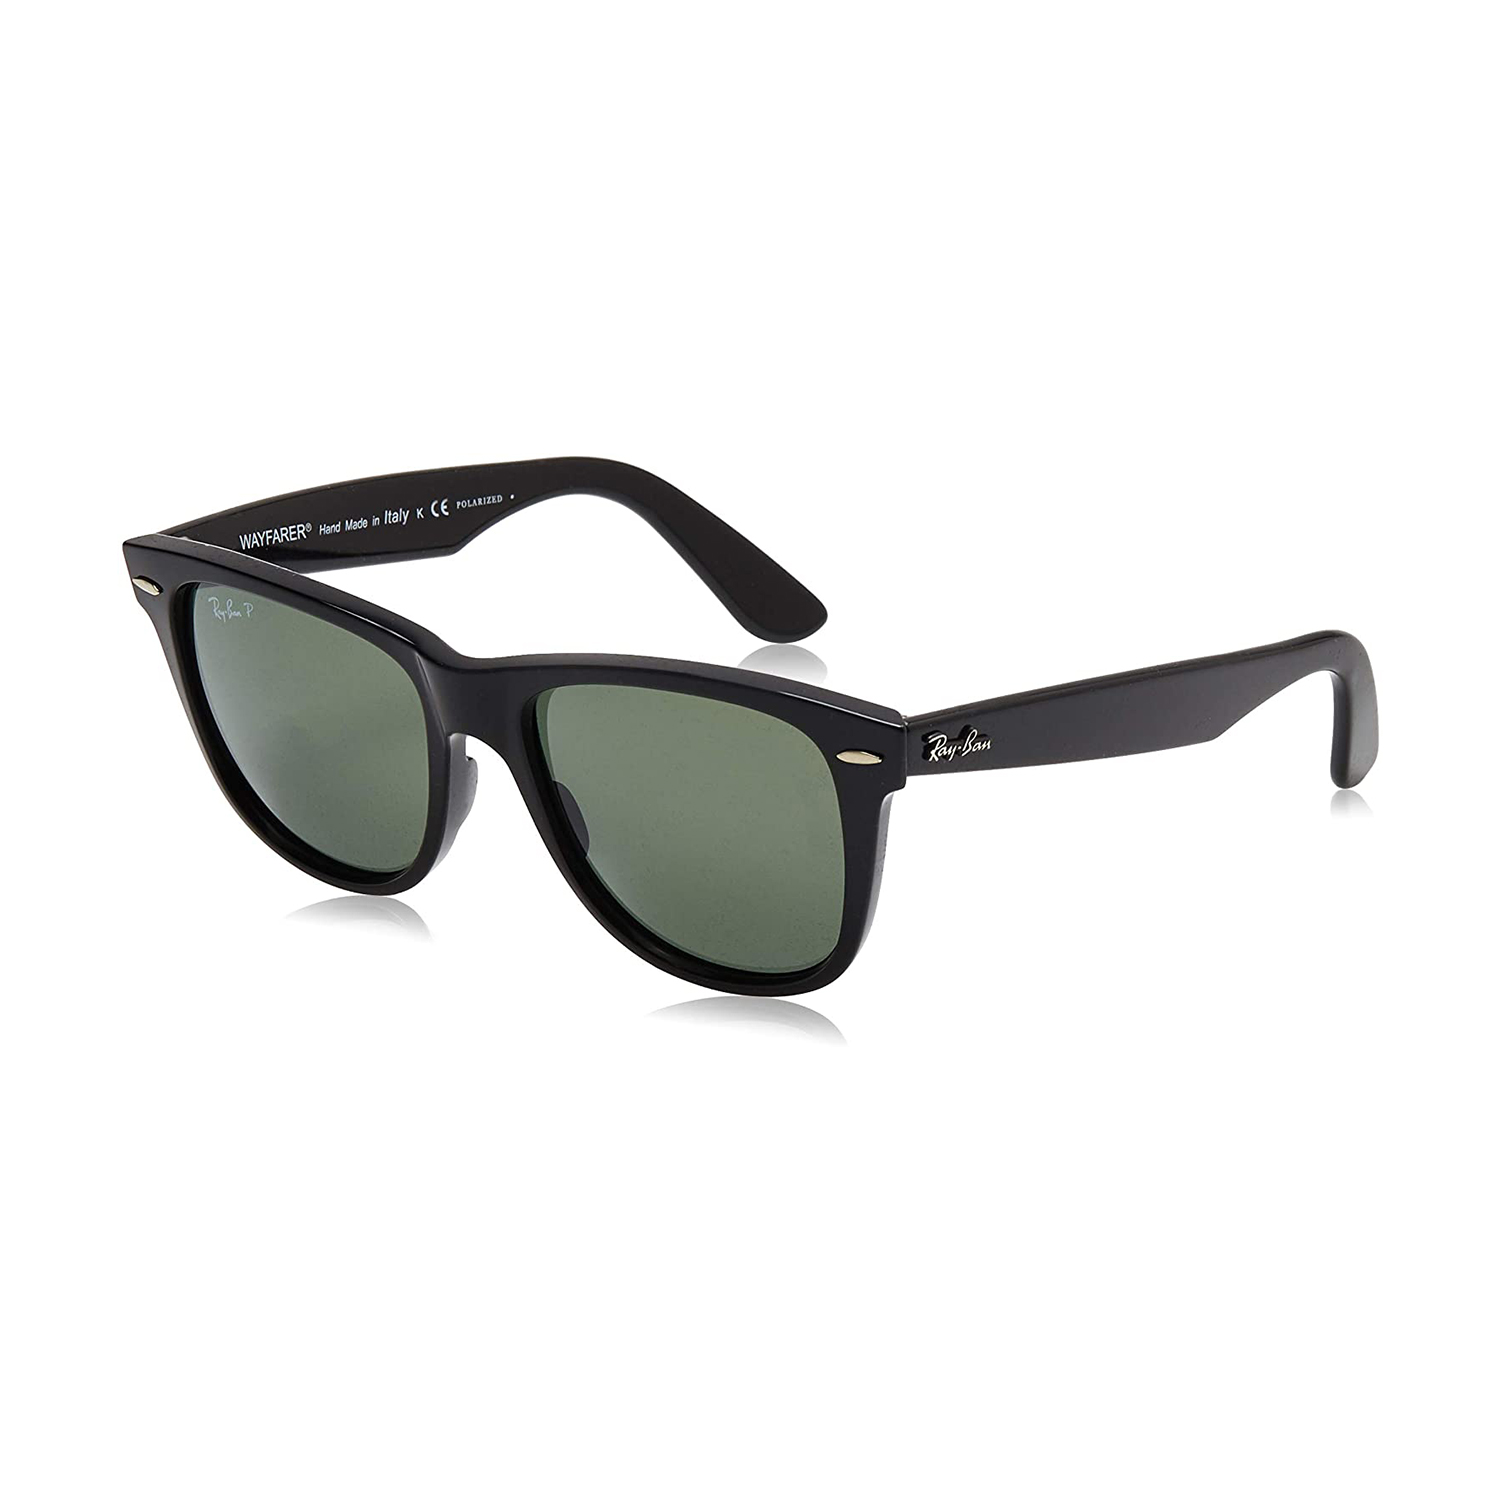 Ray-Ban Sunglasses Amazon